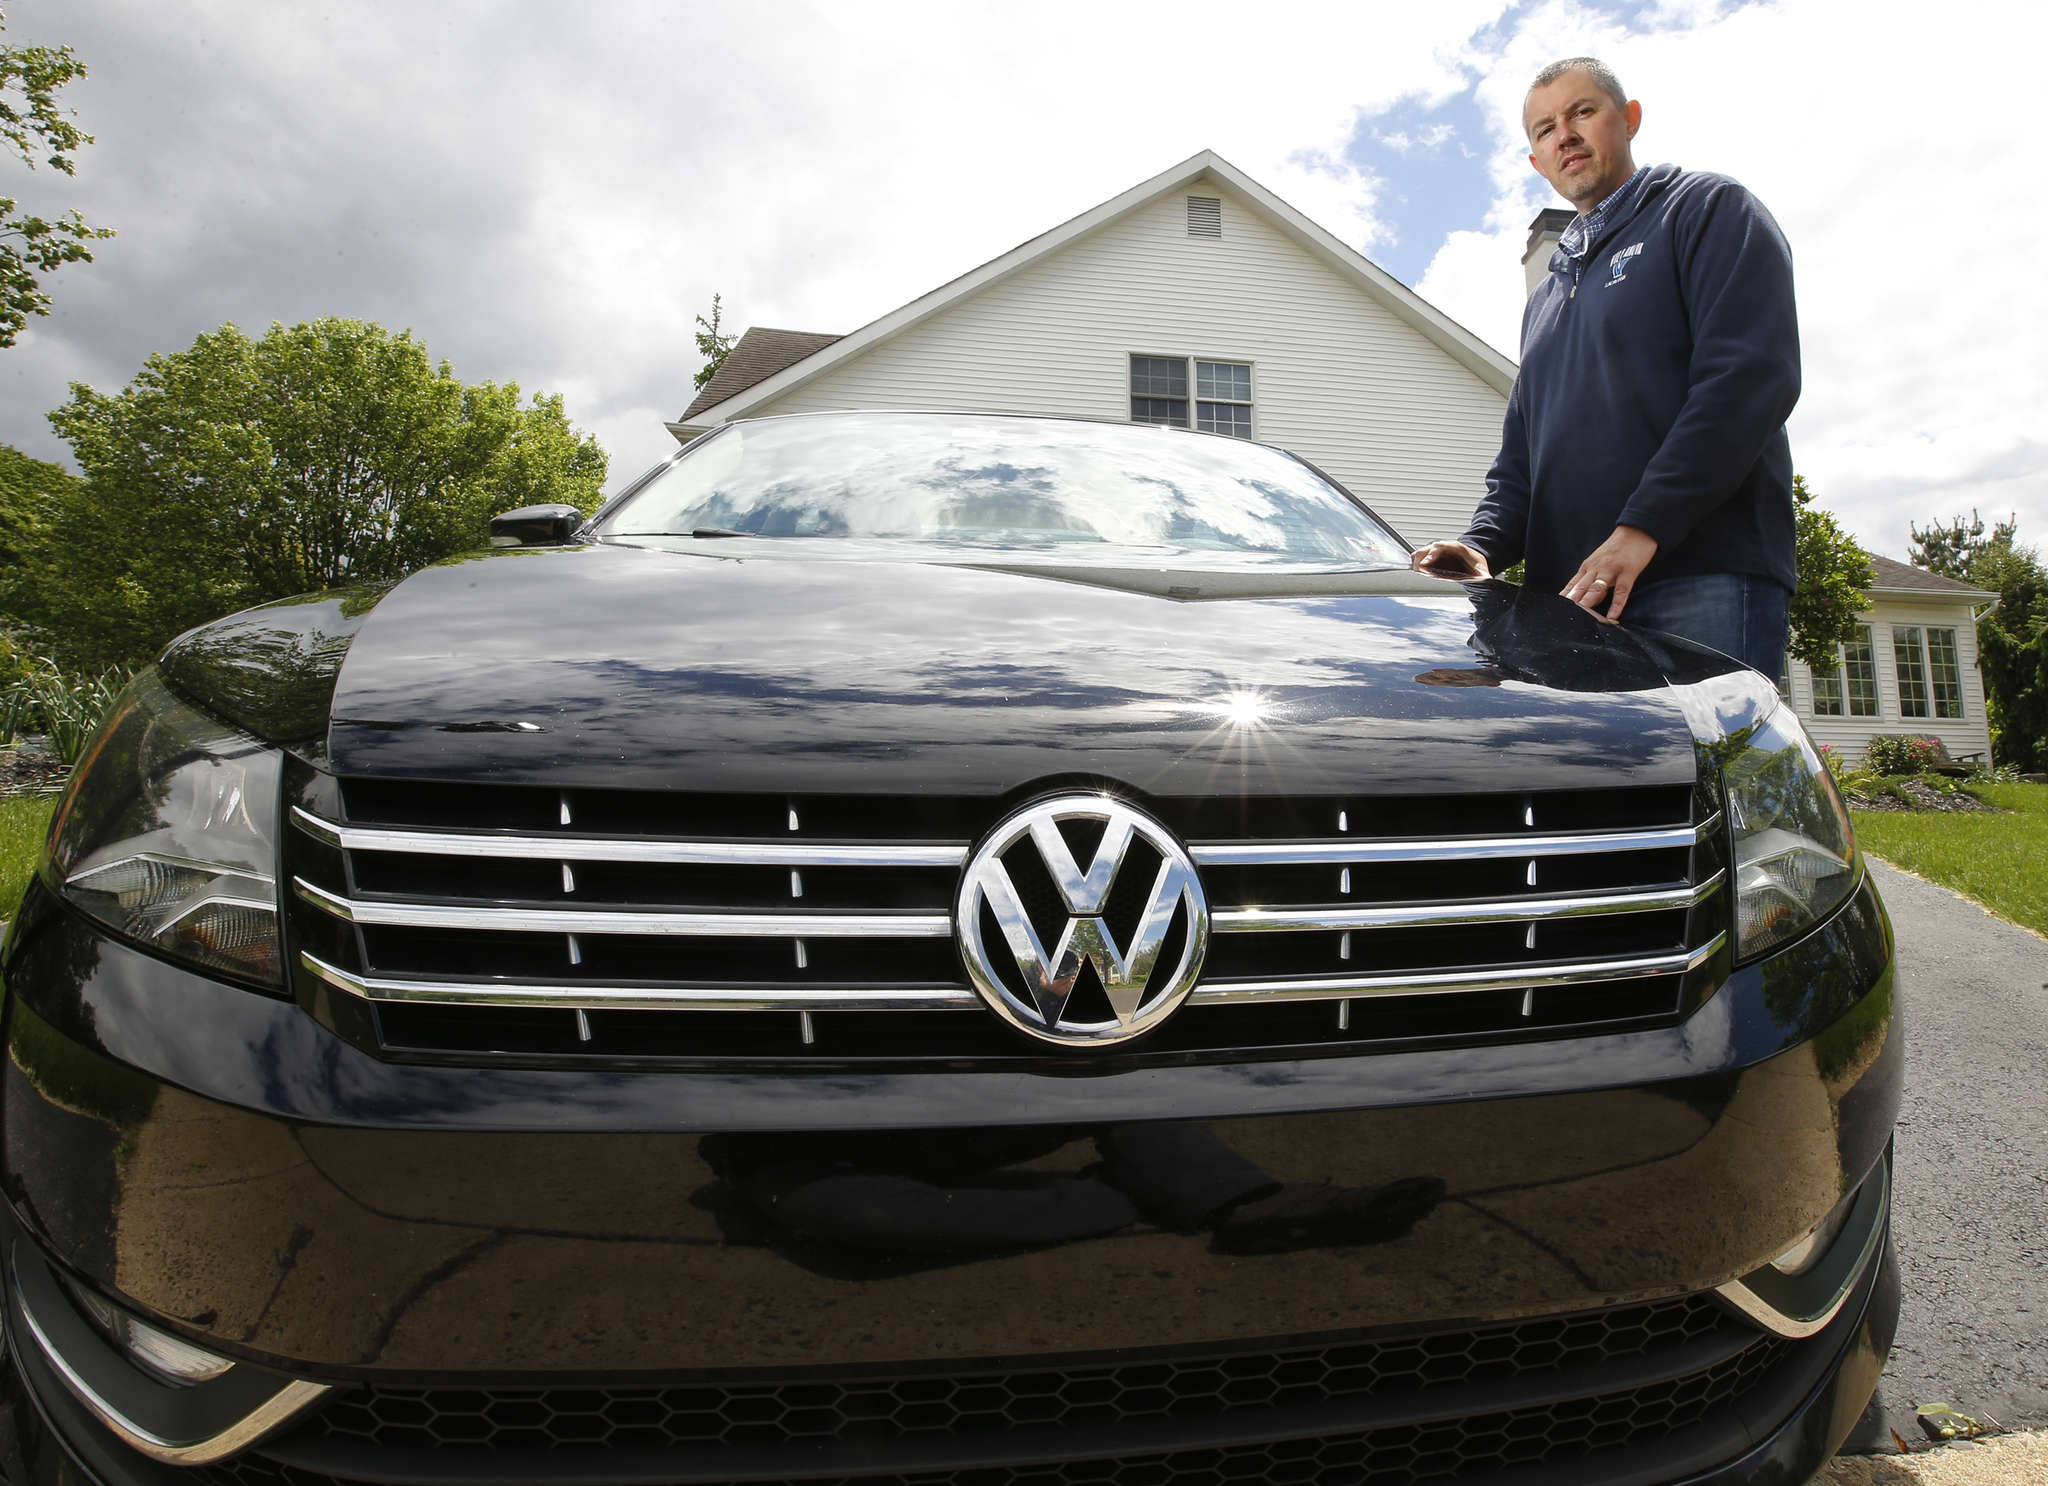 Joe Lingle of Yardley with his Volkswagen Passat TDI. Fuel economy is what´s important to him, so he might be willing to keep the car if the fix does not hurt his gas mileage.